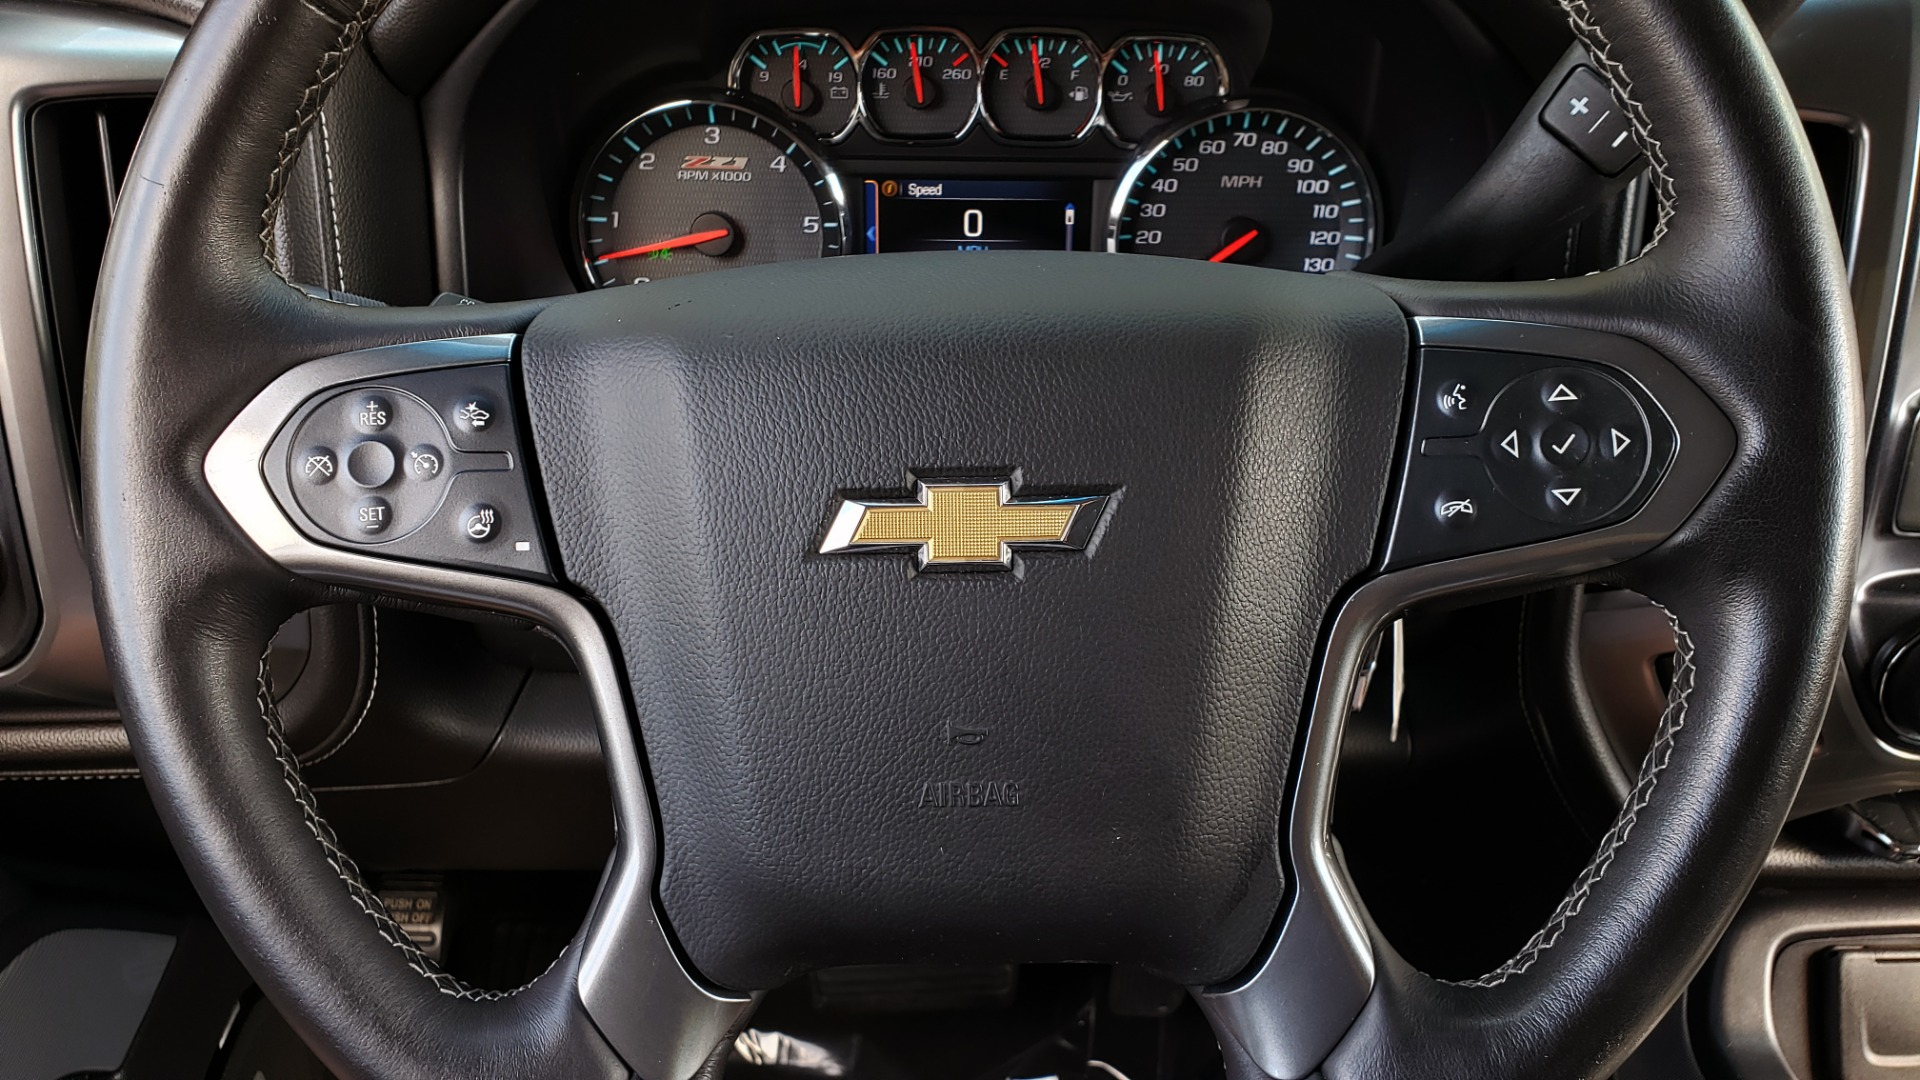 Used 2014 Chevrolet SILVERADO 1500 CREWCAB / LTZ PLUS PKG / 4WD / 2LZ / NAV / BOSE / REARVIEW for sale Sold at Formula Imports in Charlotte NC 28227 43